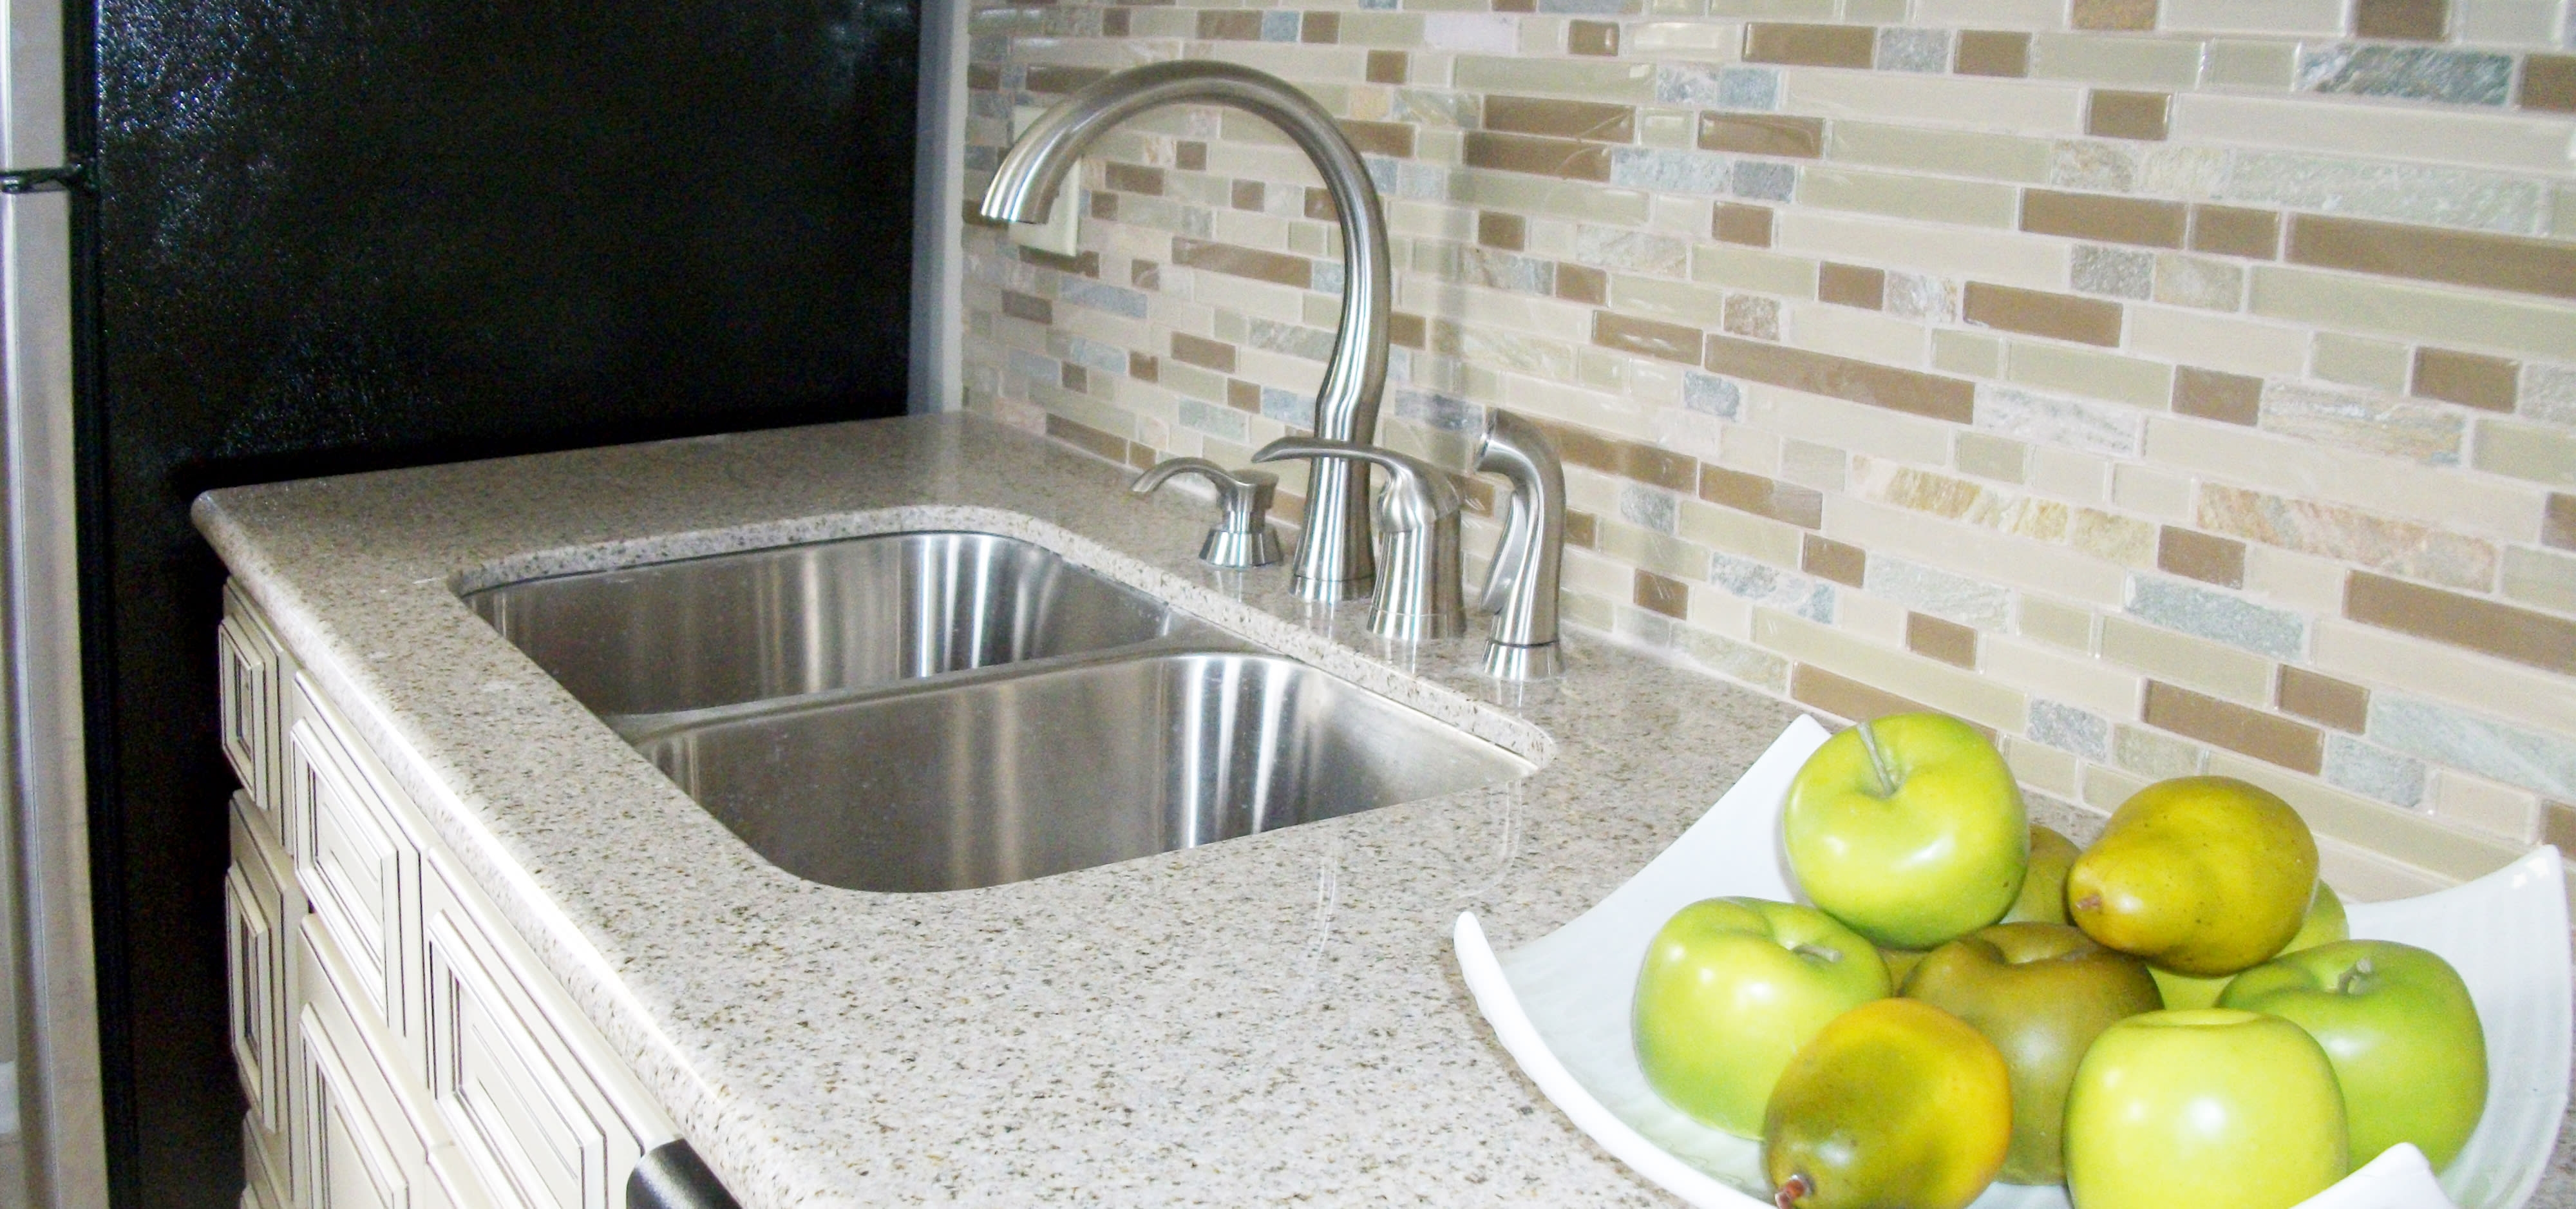 - Color Theory: Best Bets For Countertops And Backsplashes In A